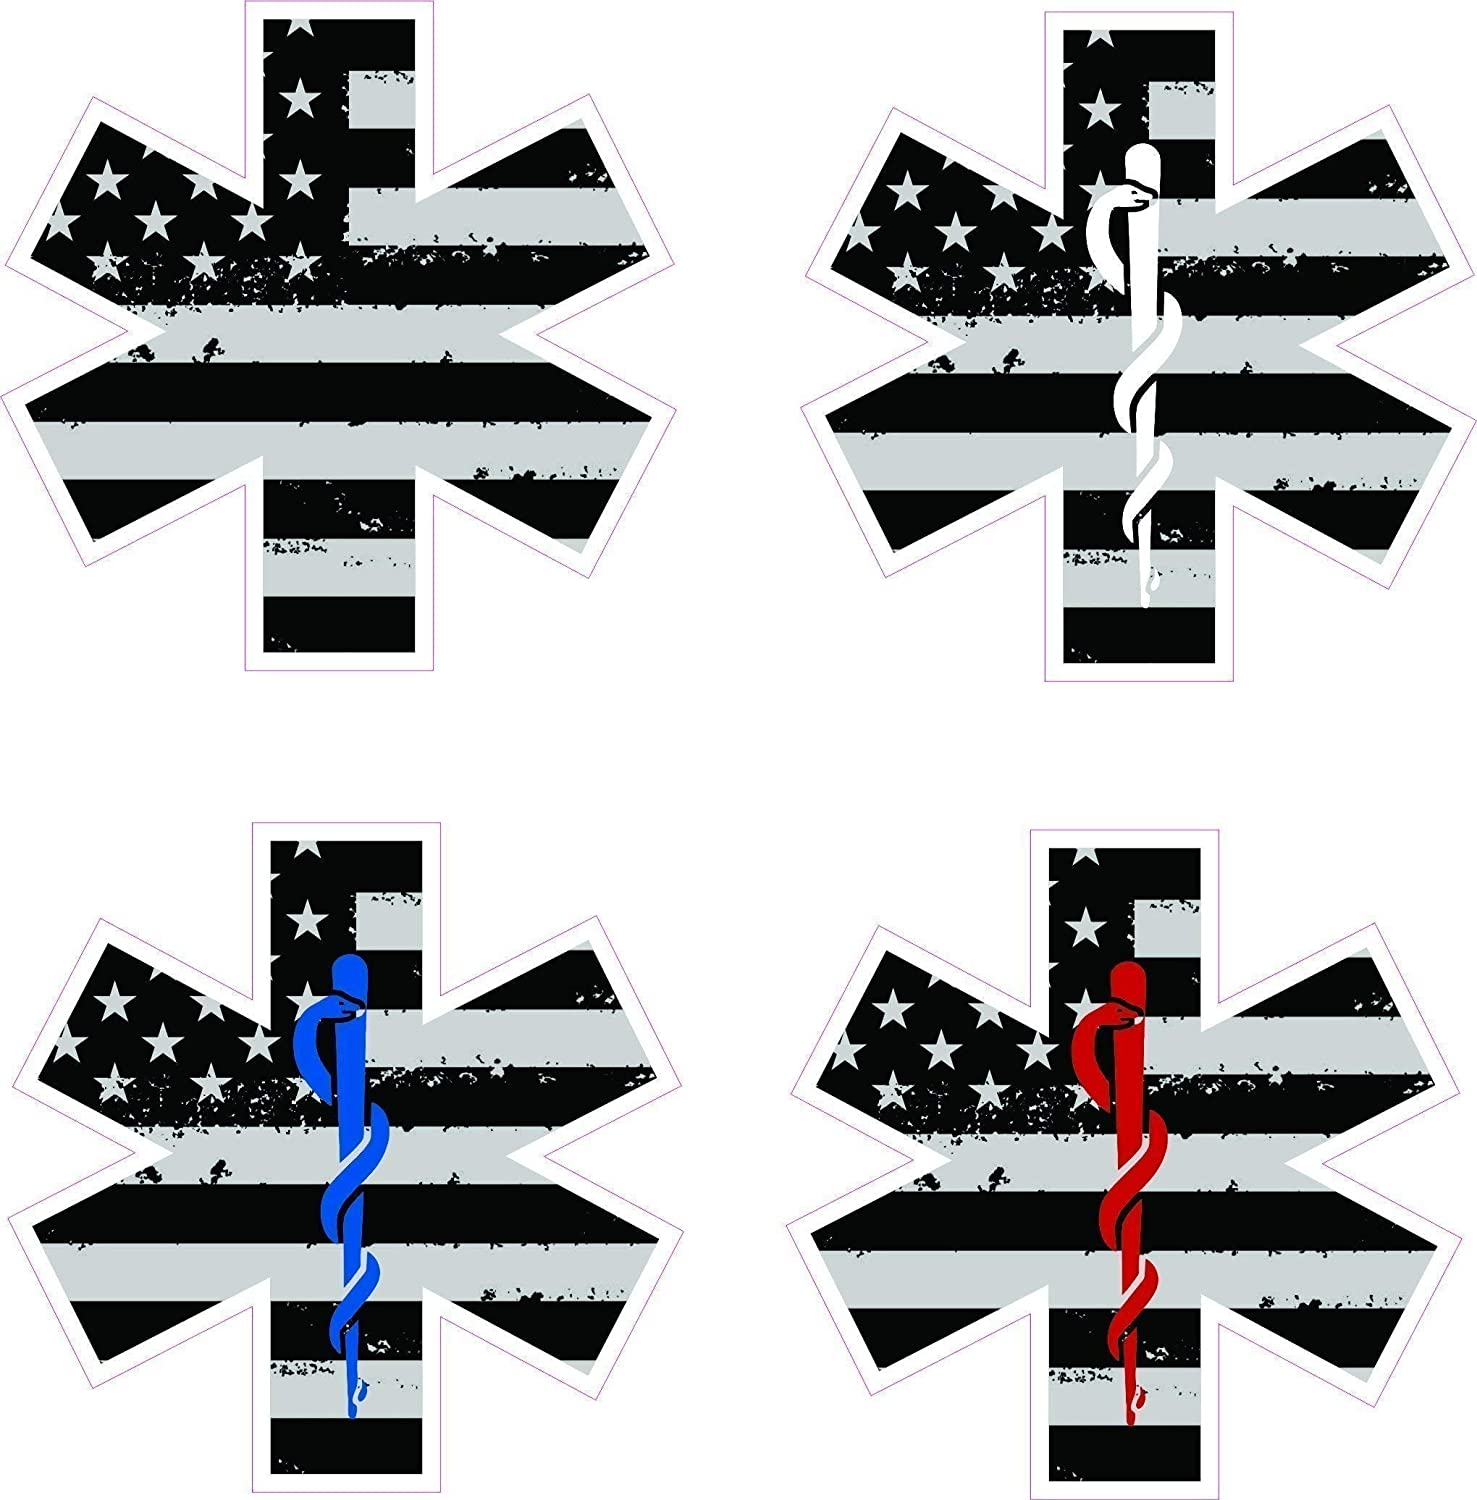 Star of life w/rod of Asclepius decal with tattered/distressed black and white American flag- Medical EMS EMT Paramedic Medics sticker 81APwjidHtL